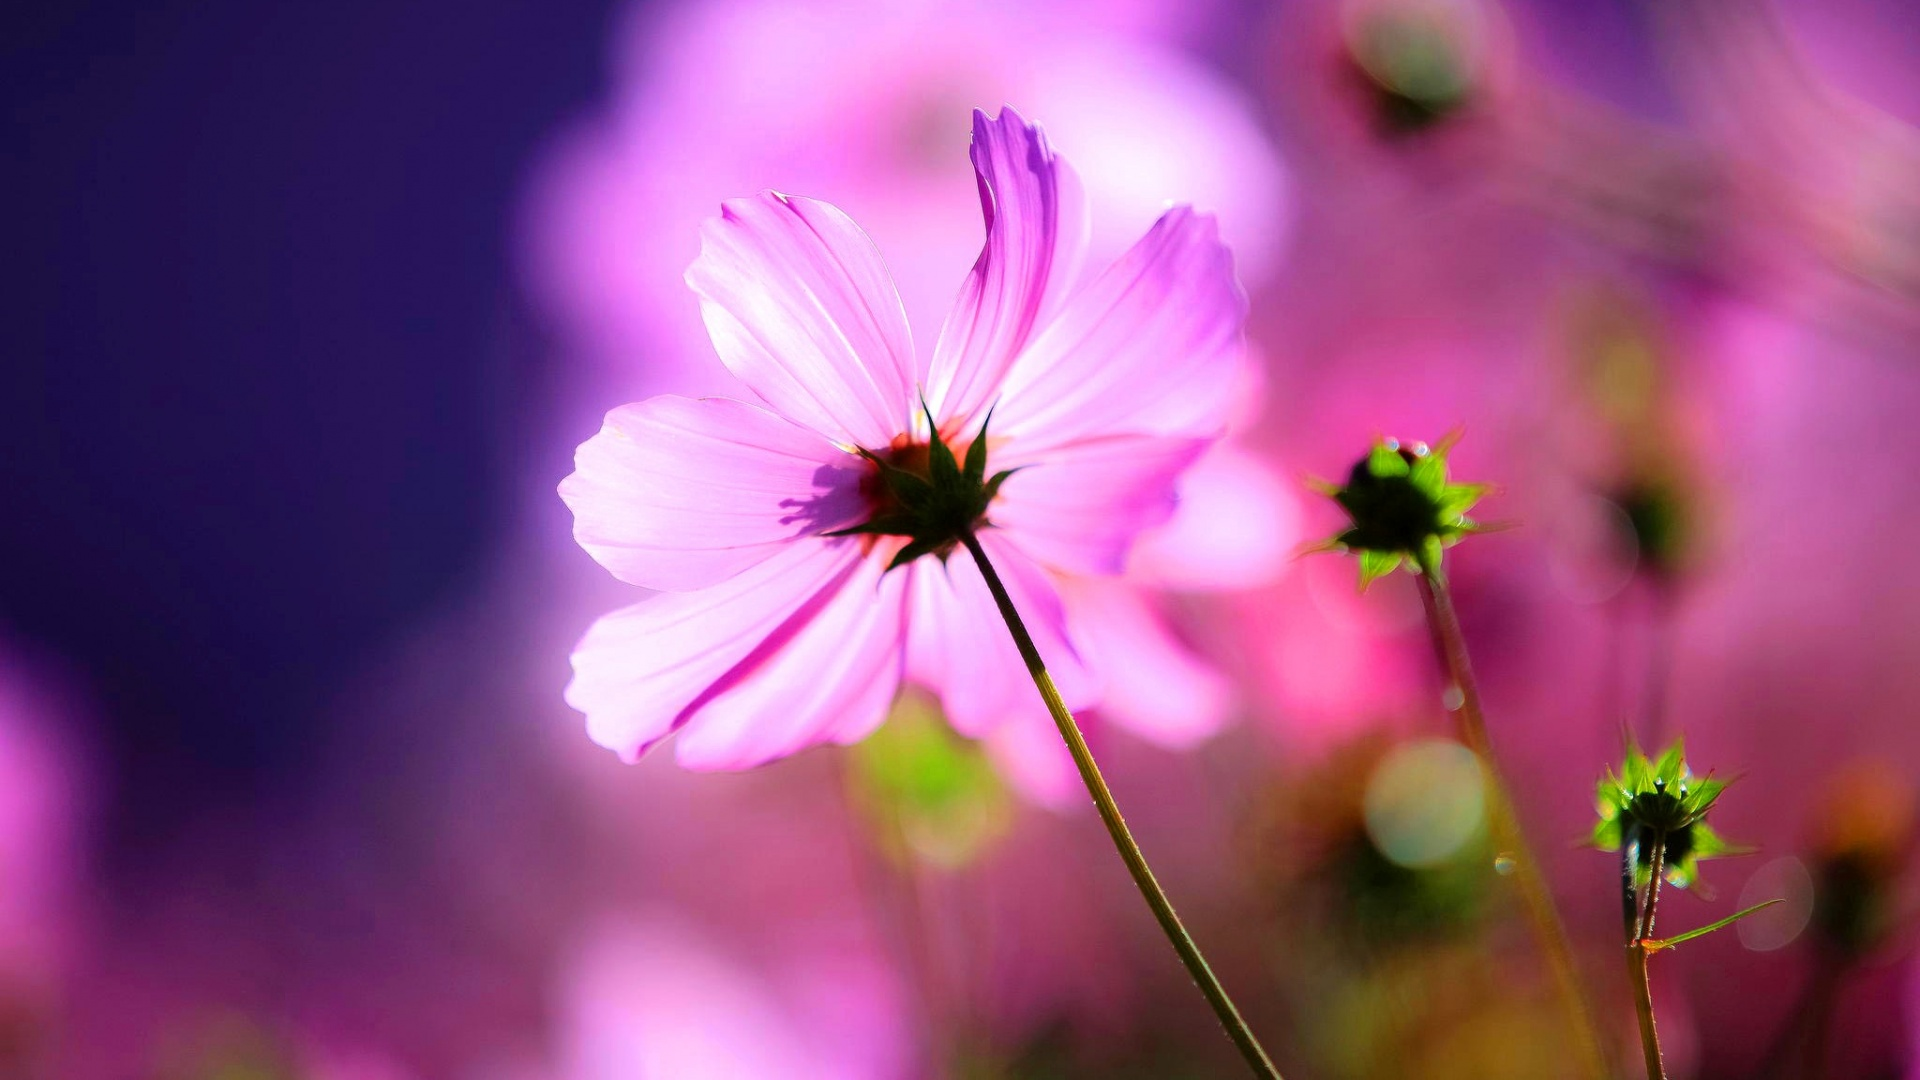 cosmos buds flower light wallpapers 1920x1080 329764